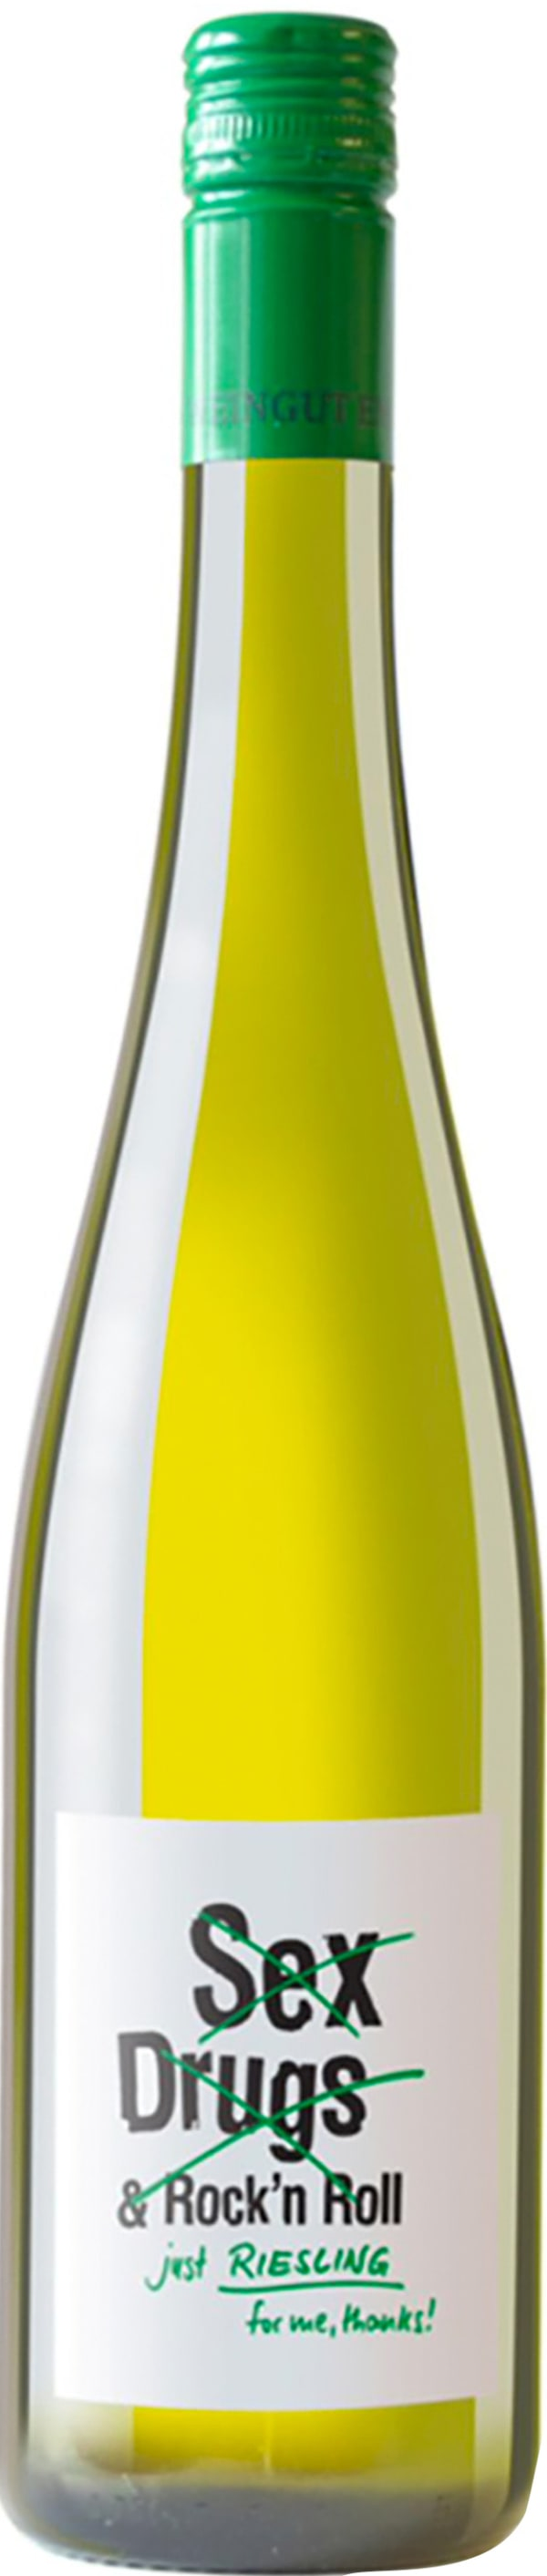 Emil Bauer Just Riesling 2020